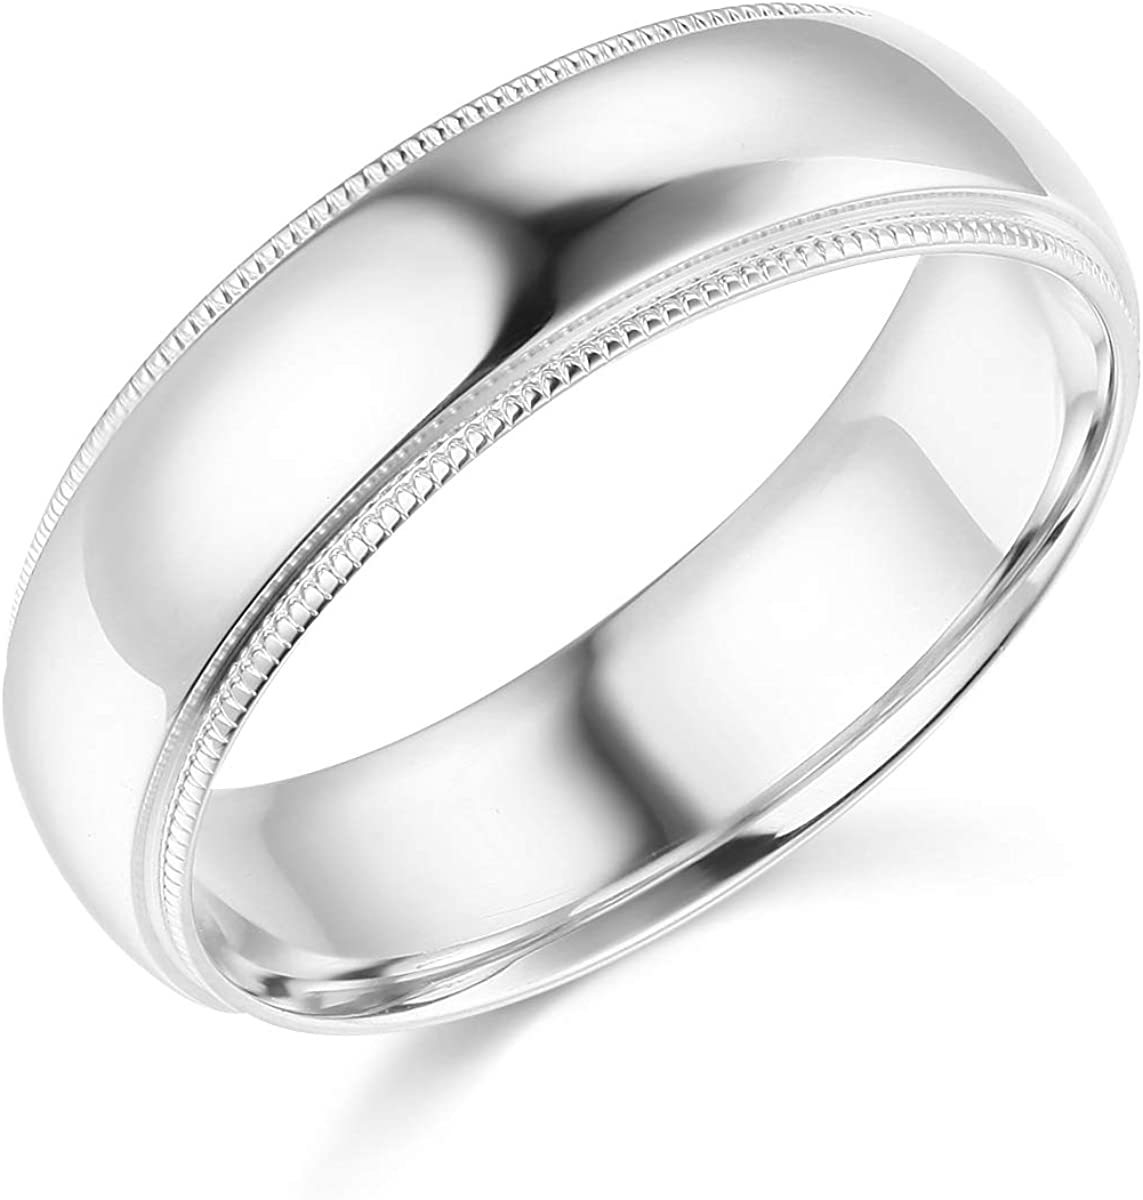 Wellingsale Mens 14k Yellow -OR- White Gold Solid 6mm COMFORT FIT Milgrain Traditional Wedding Band Ring